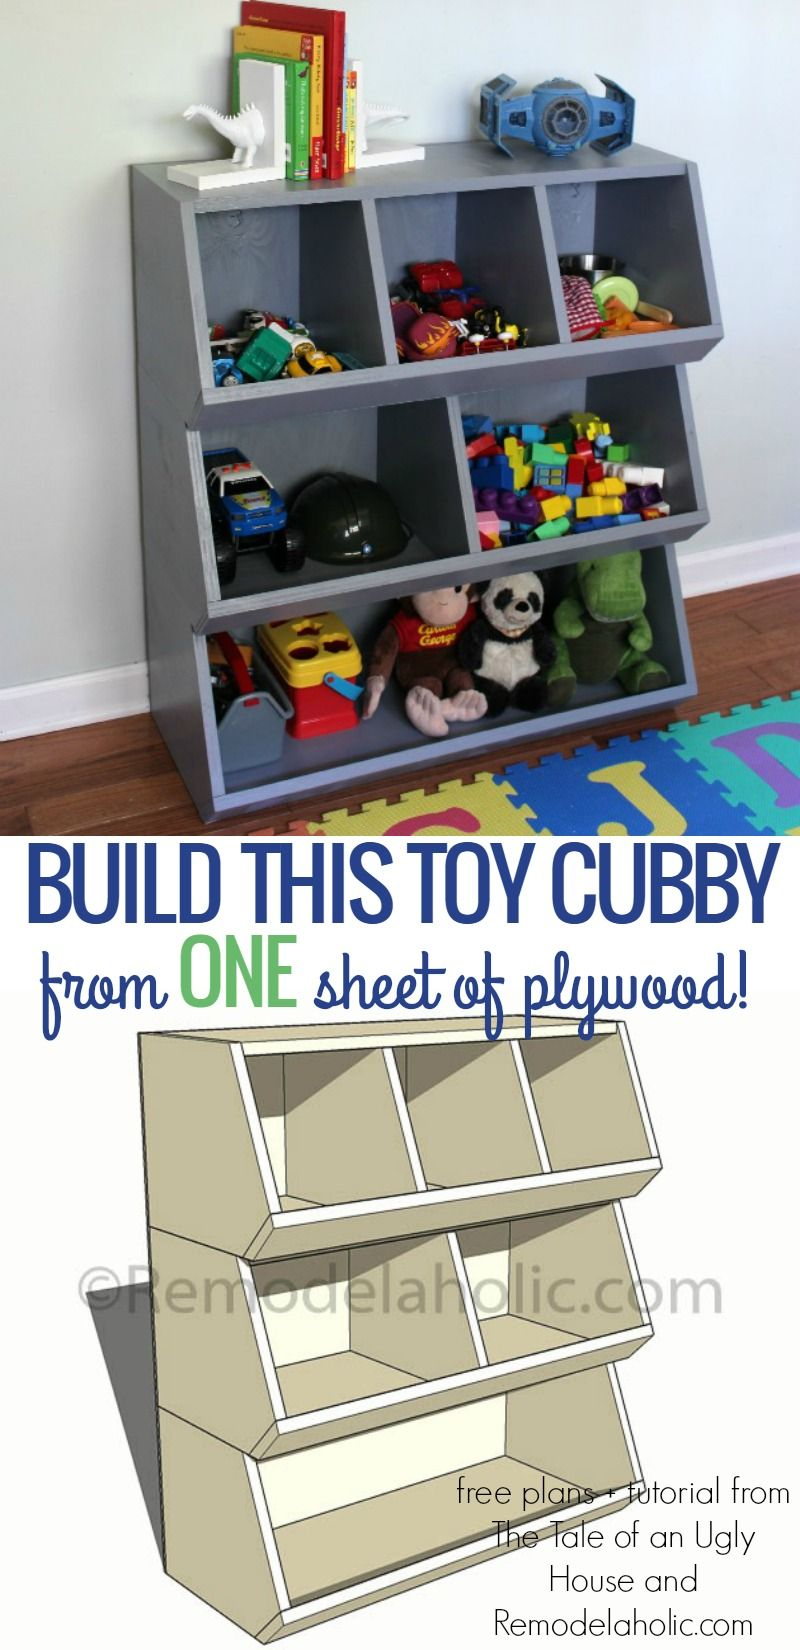 7 1 Toy Storage Ideas 2019 Diy Plans In A Small Space Diy Shelves Bedroom Diy Toy Storage Toy Storage Furniture